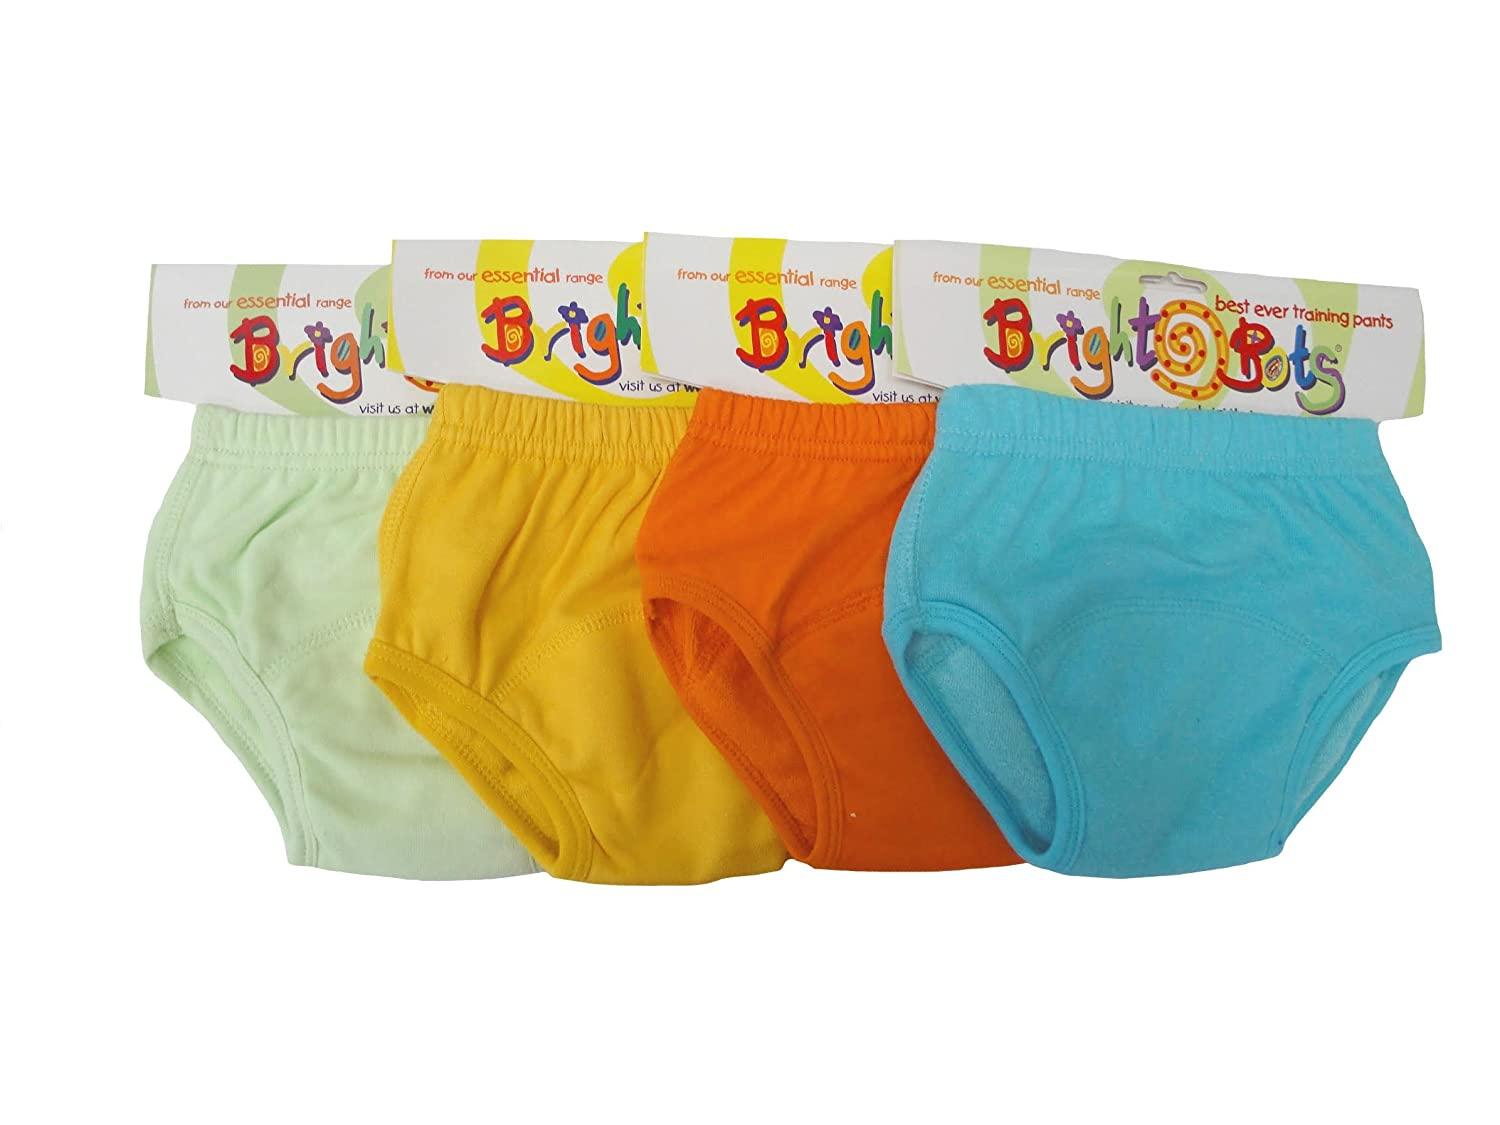 Bright Bots Washable Potty Training Pants with PUL Lining 4pk Extra Large - Unisex (approx 36m) 2AAETRA-4XLU